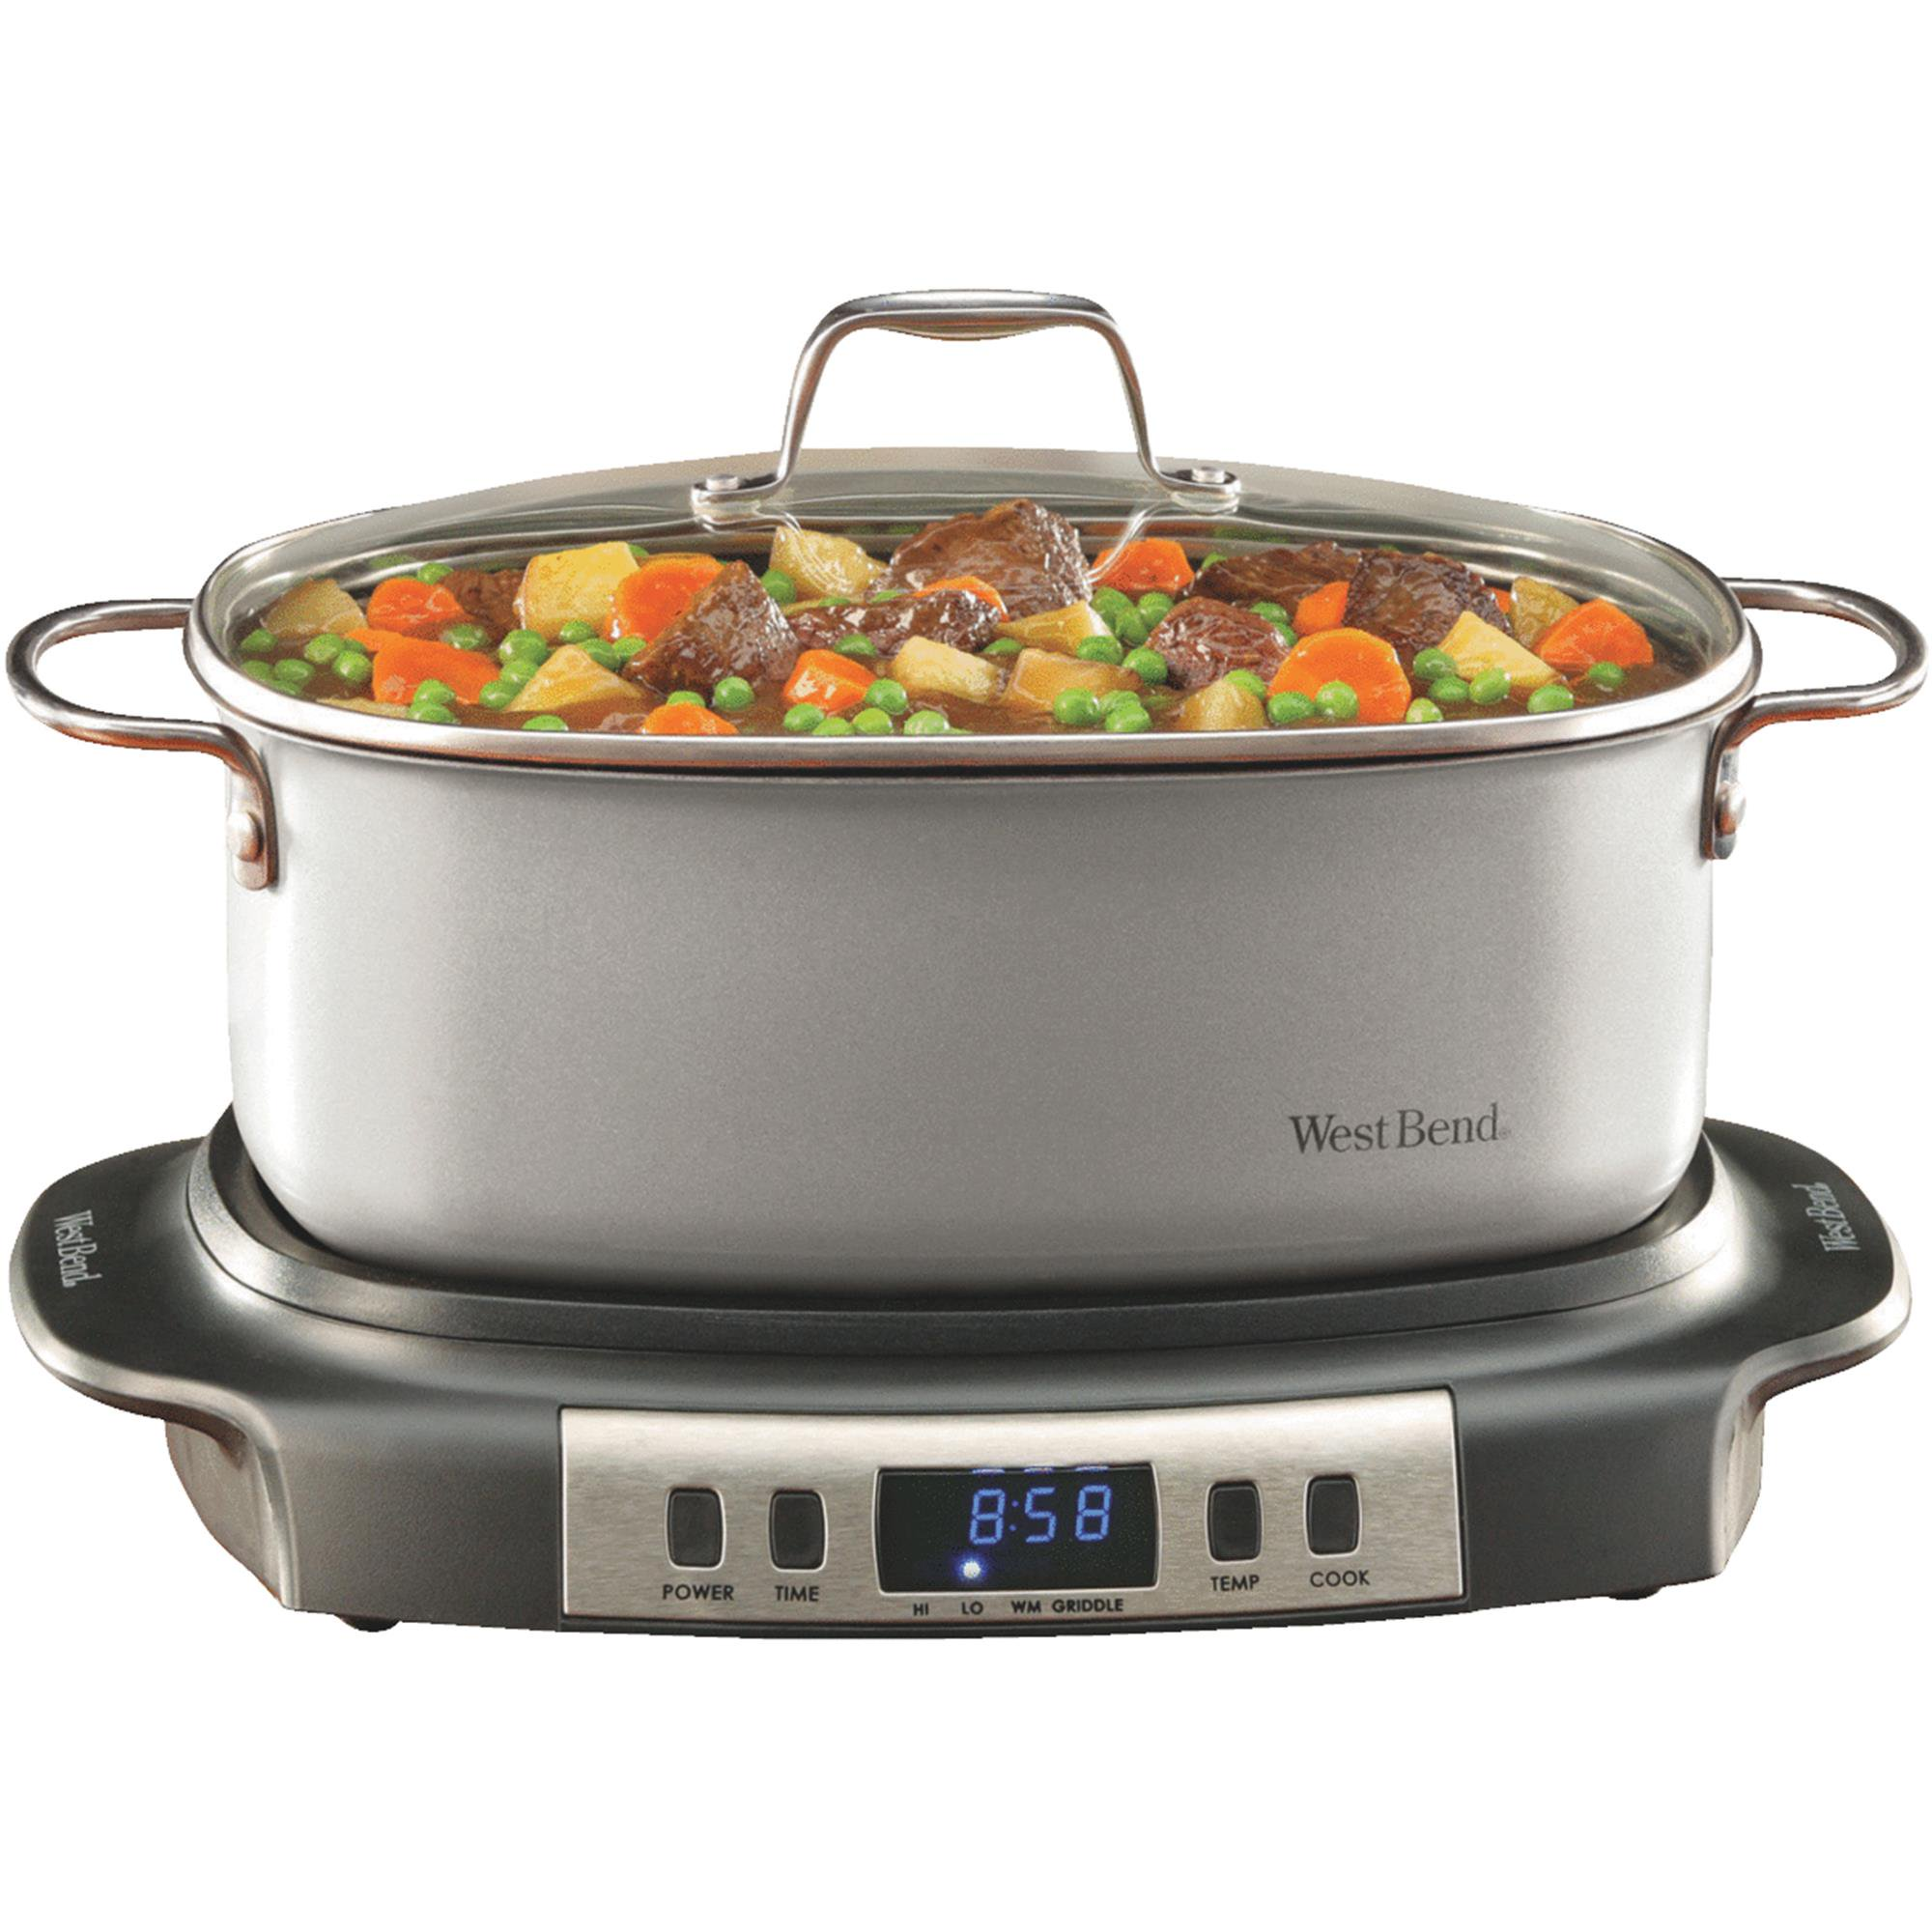 West Bend Electronic Versatility 6-QT Slow Cooker